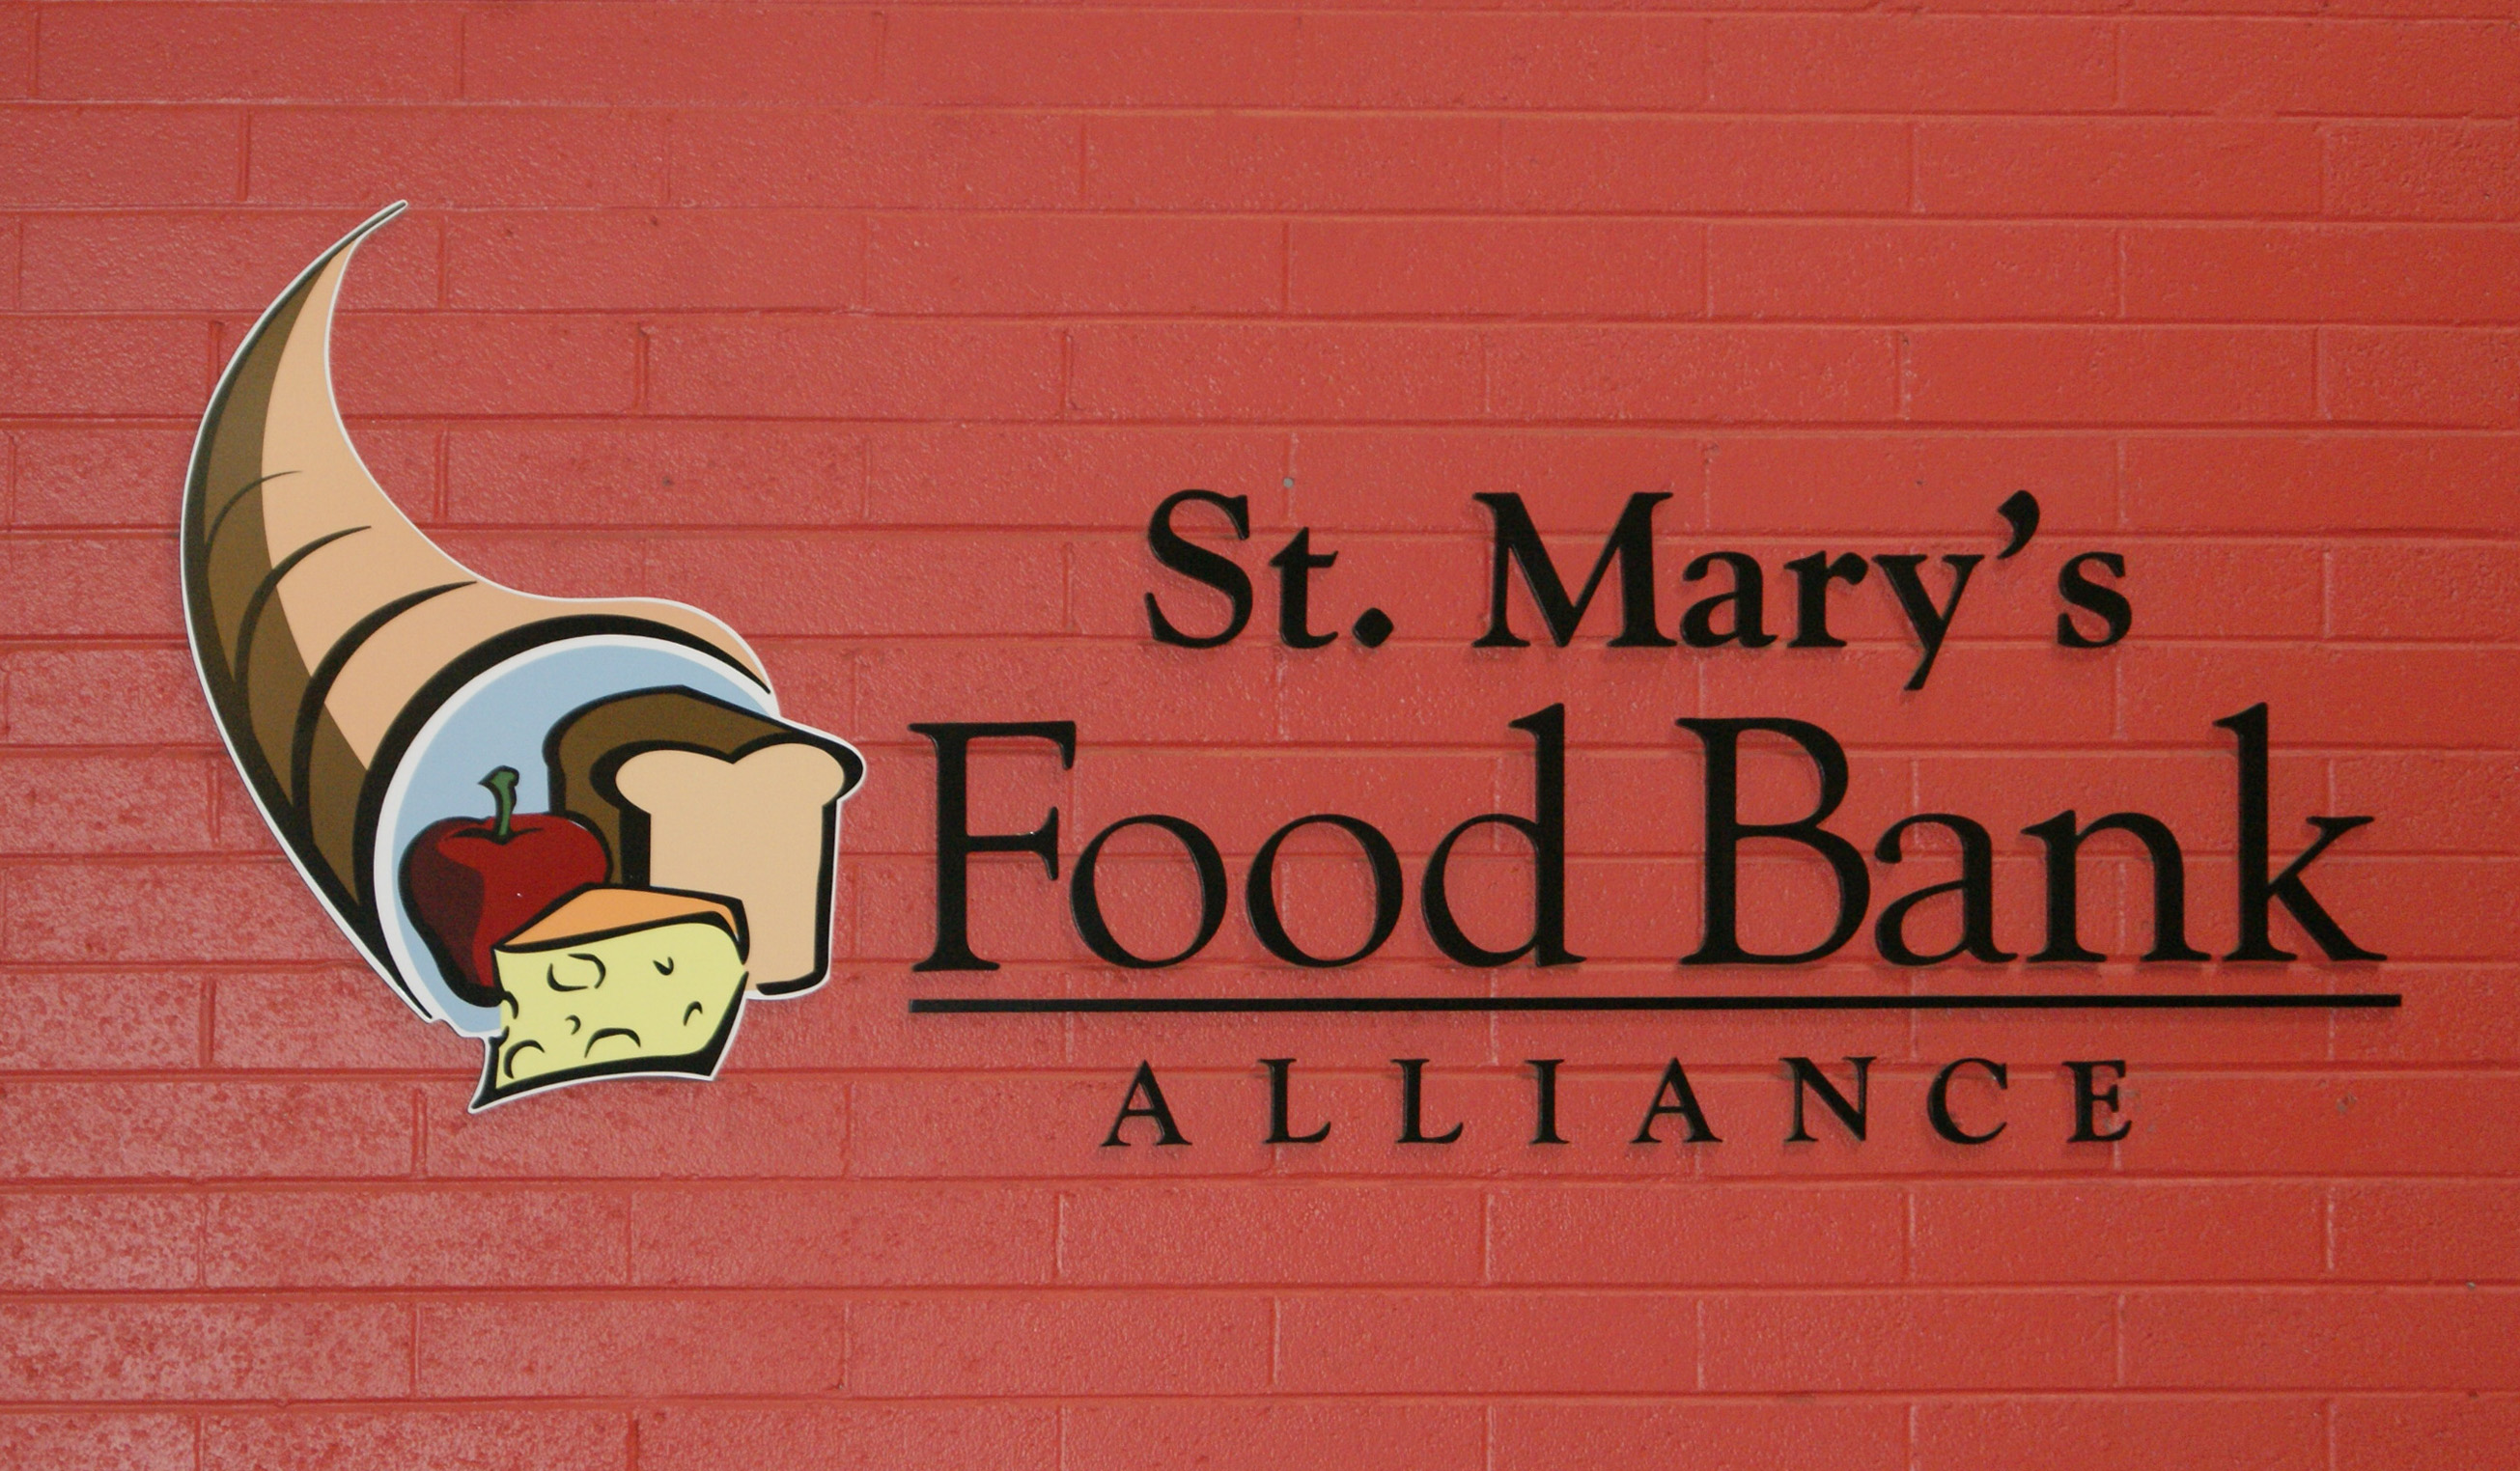 Drive Time Locations >> St. Mary's Food Bank - Phoenix - DriveTime Charities